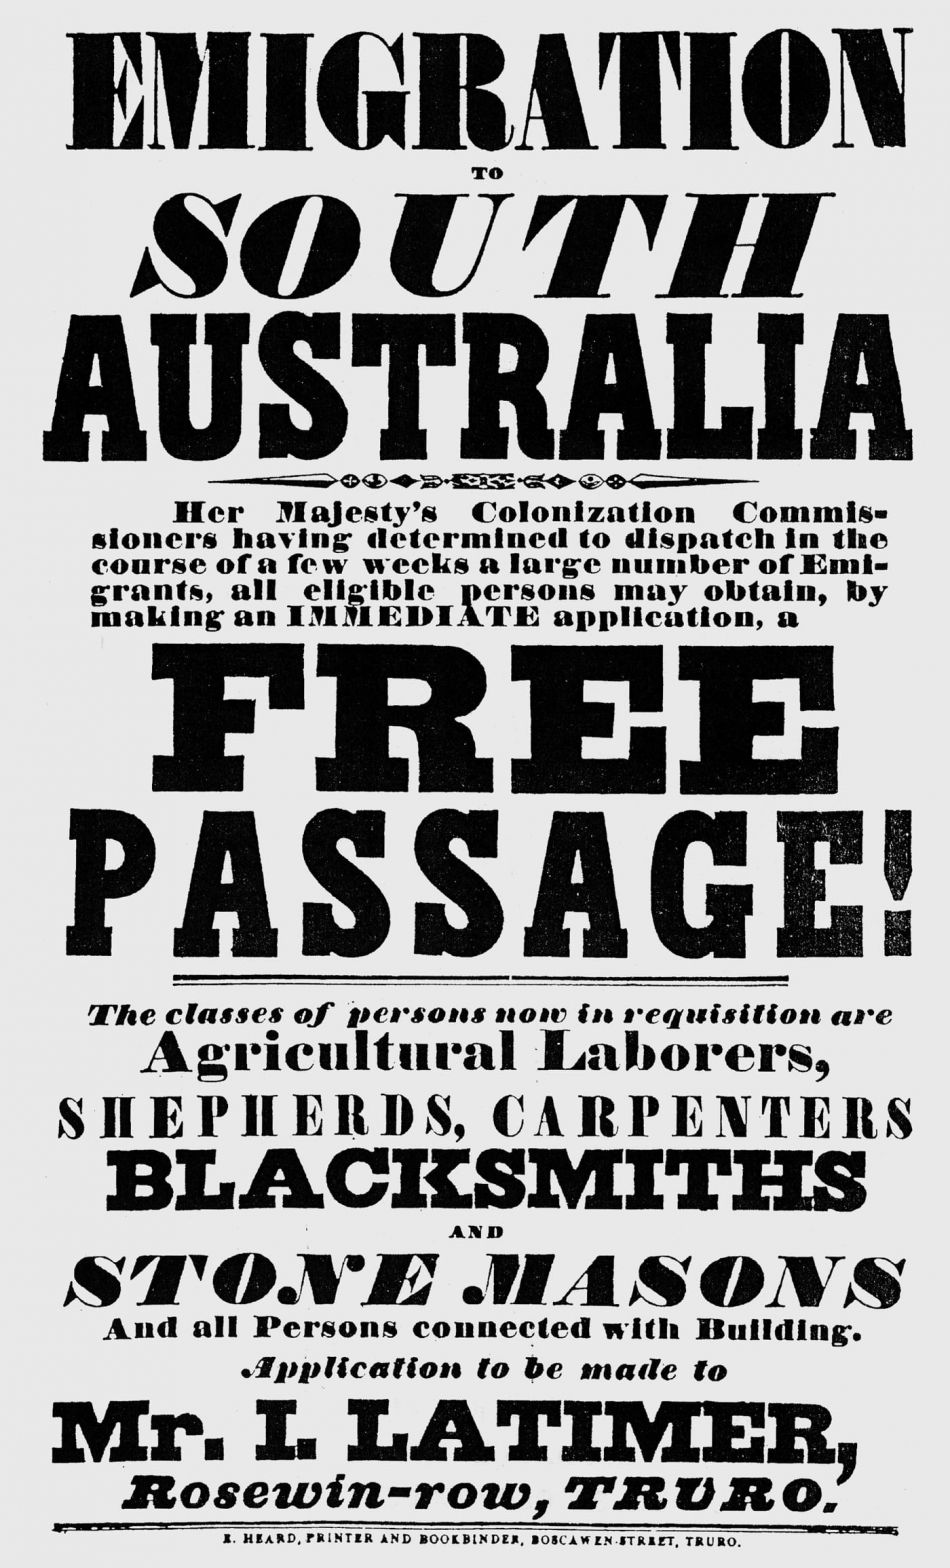 Poster to promote emigration to South Australia